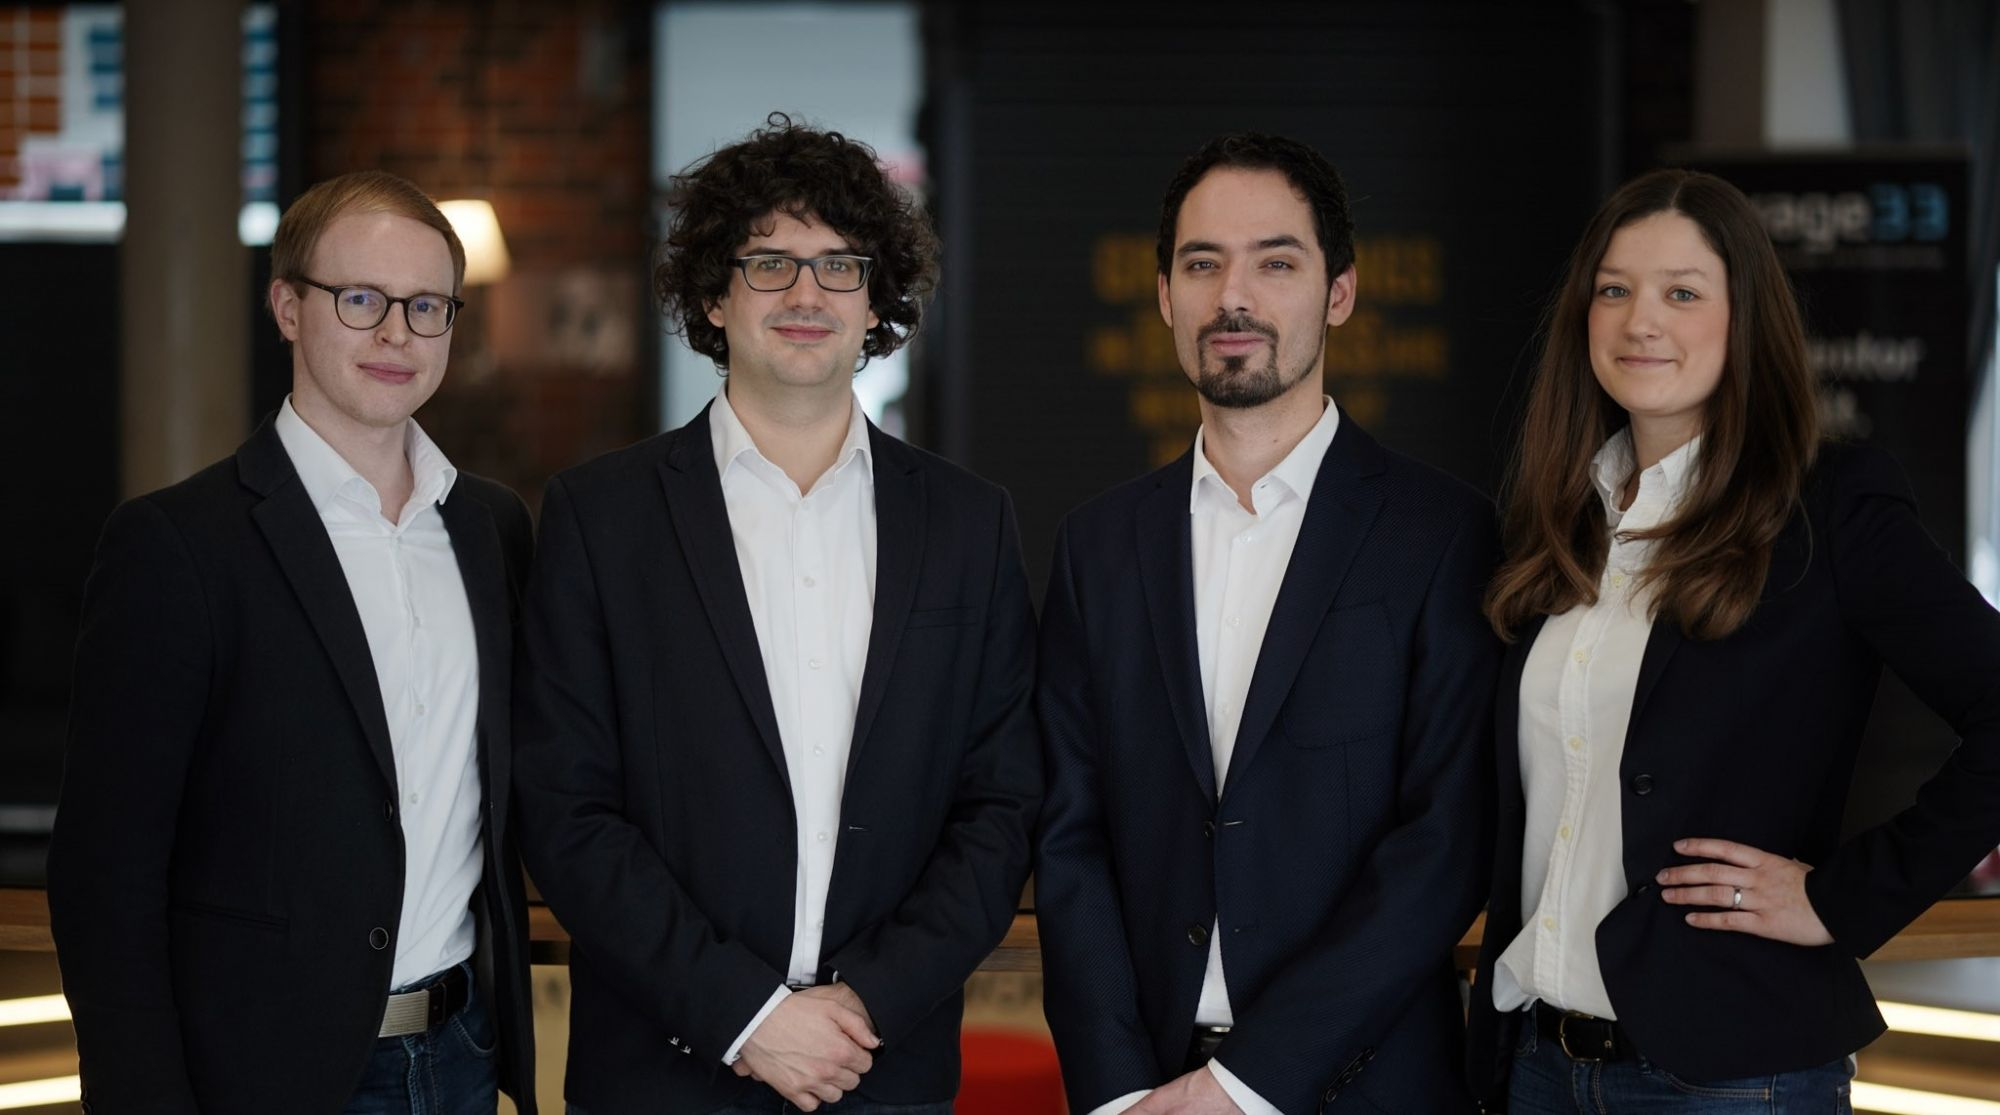 The AMendate founders, from left to right: Dr. Gereon Deppe, CFO, Dr. Thomas Reiher, CEO, Steffen Vogelsang, CTO, Anne Düchting, COO. Photo via Hexagon.